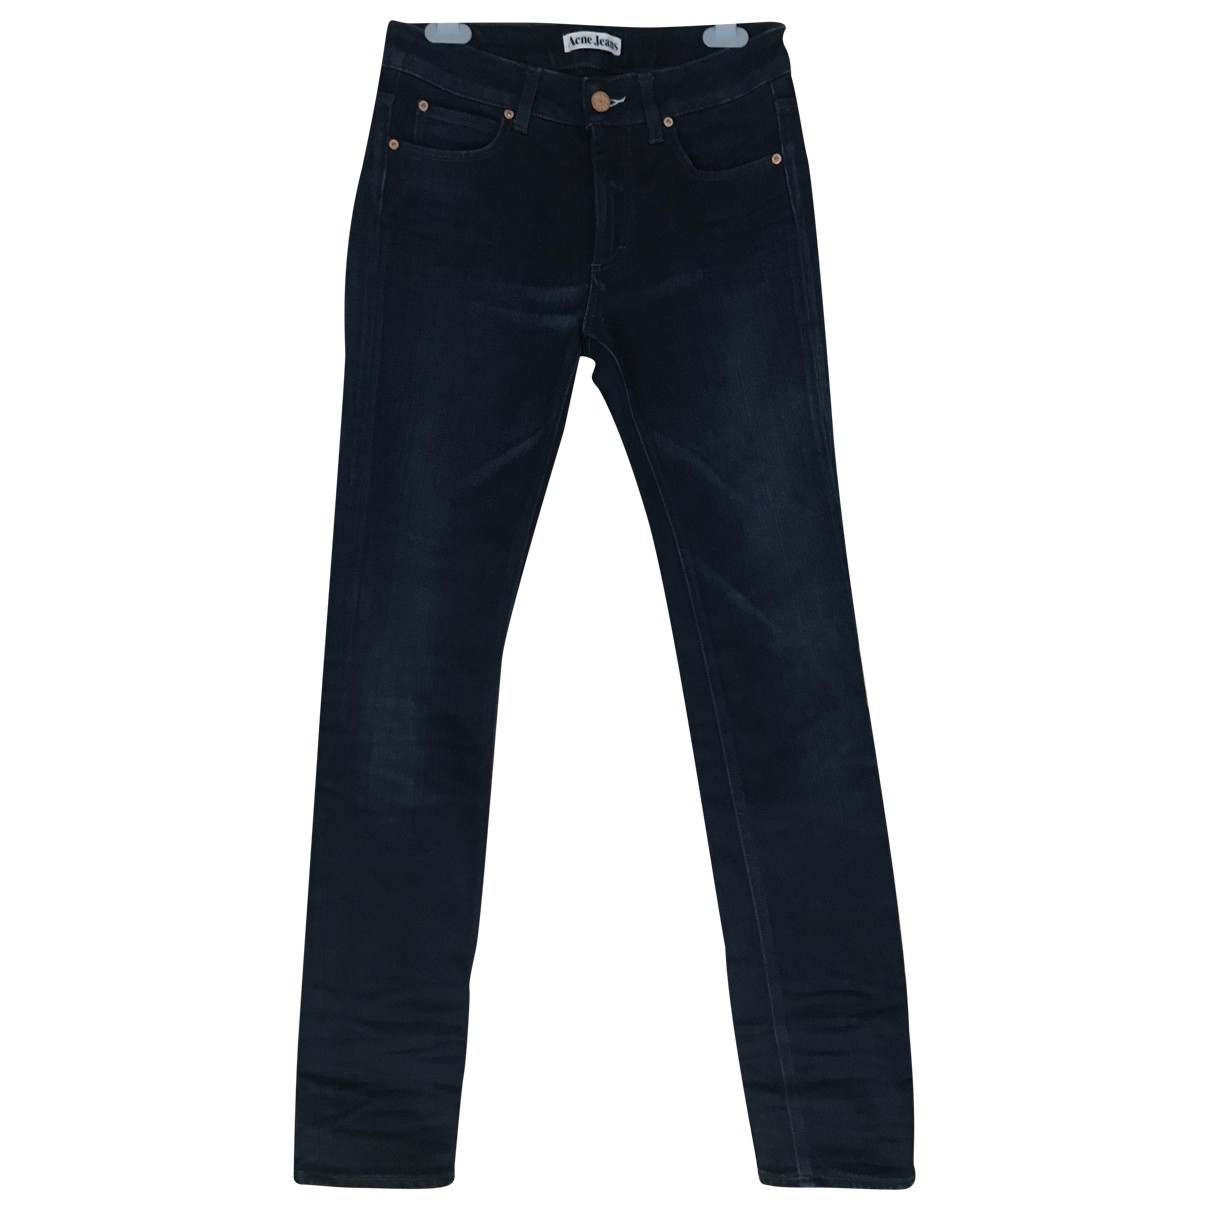 Madewell \N Blue Cotton - elasthane Jeans for Women 28 US